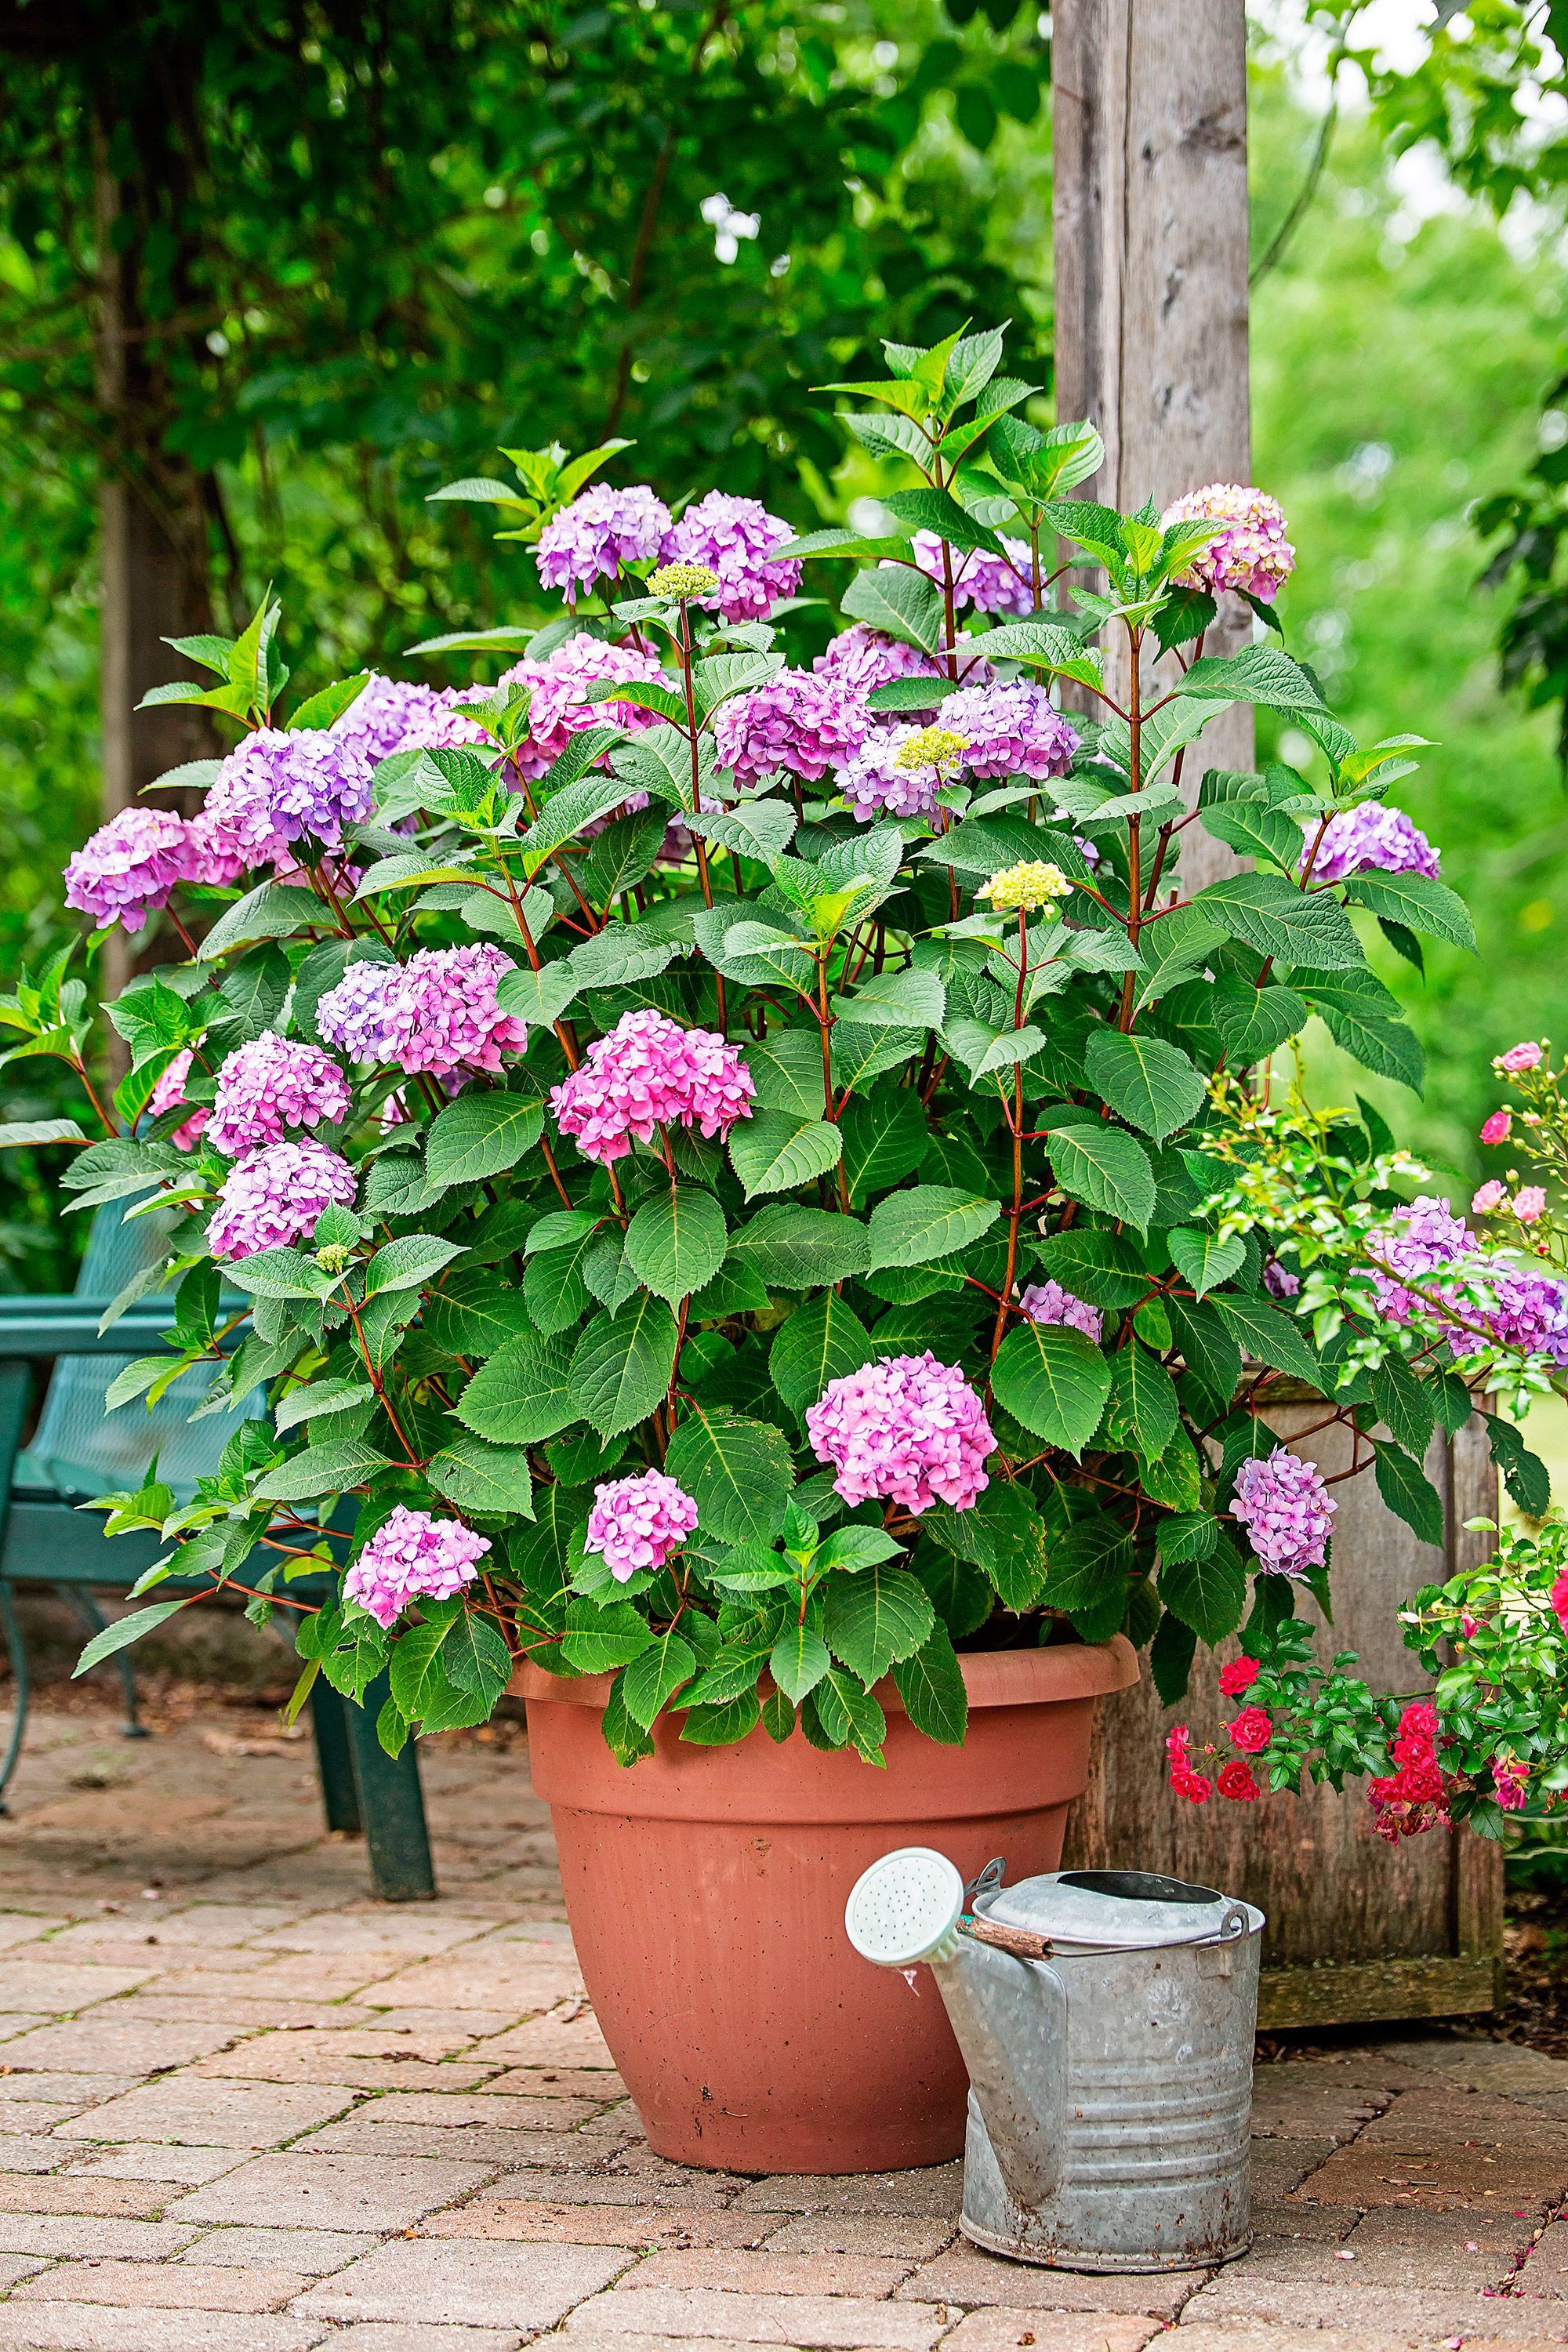 Big Container Plants For Small Yards Growing Hydrangeas Container Plants Hydrangea Potted